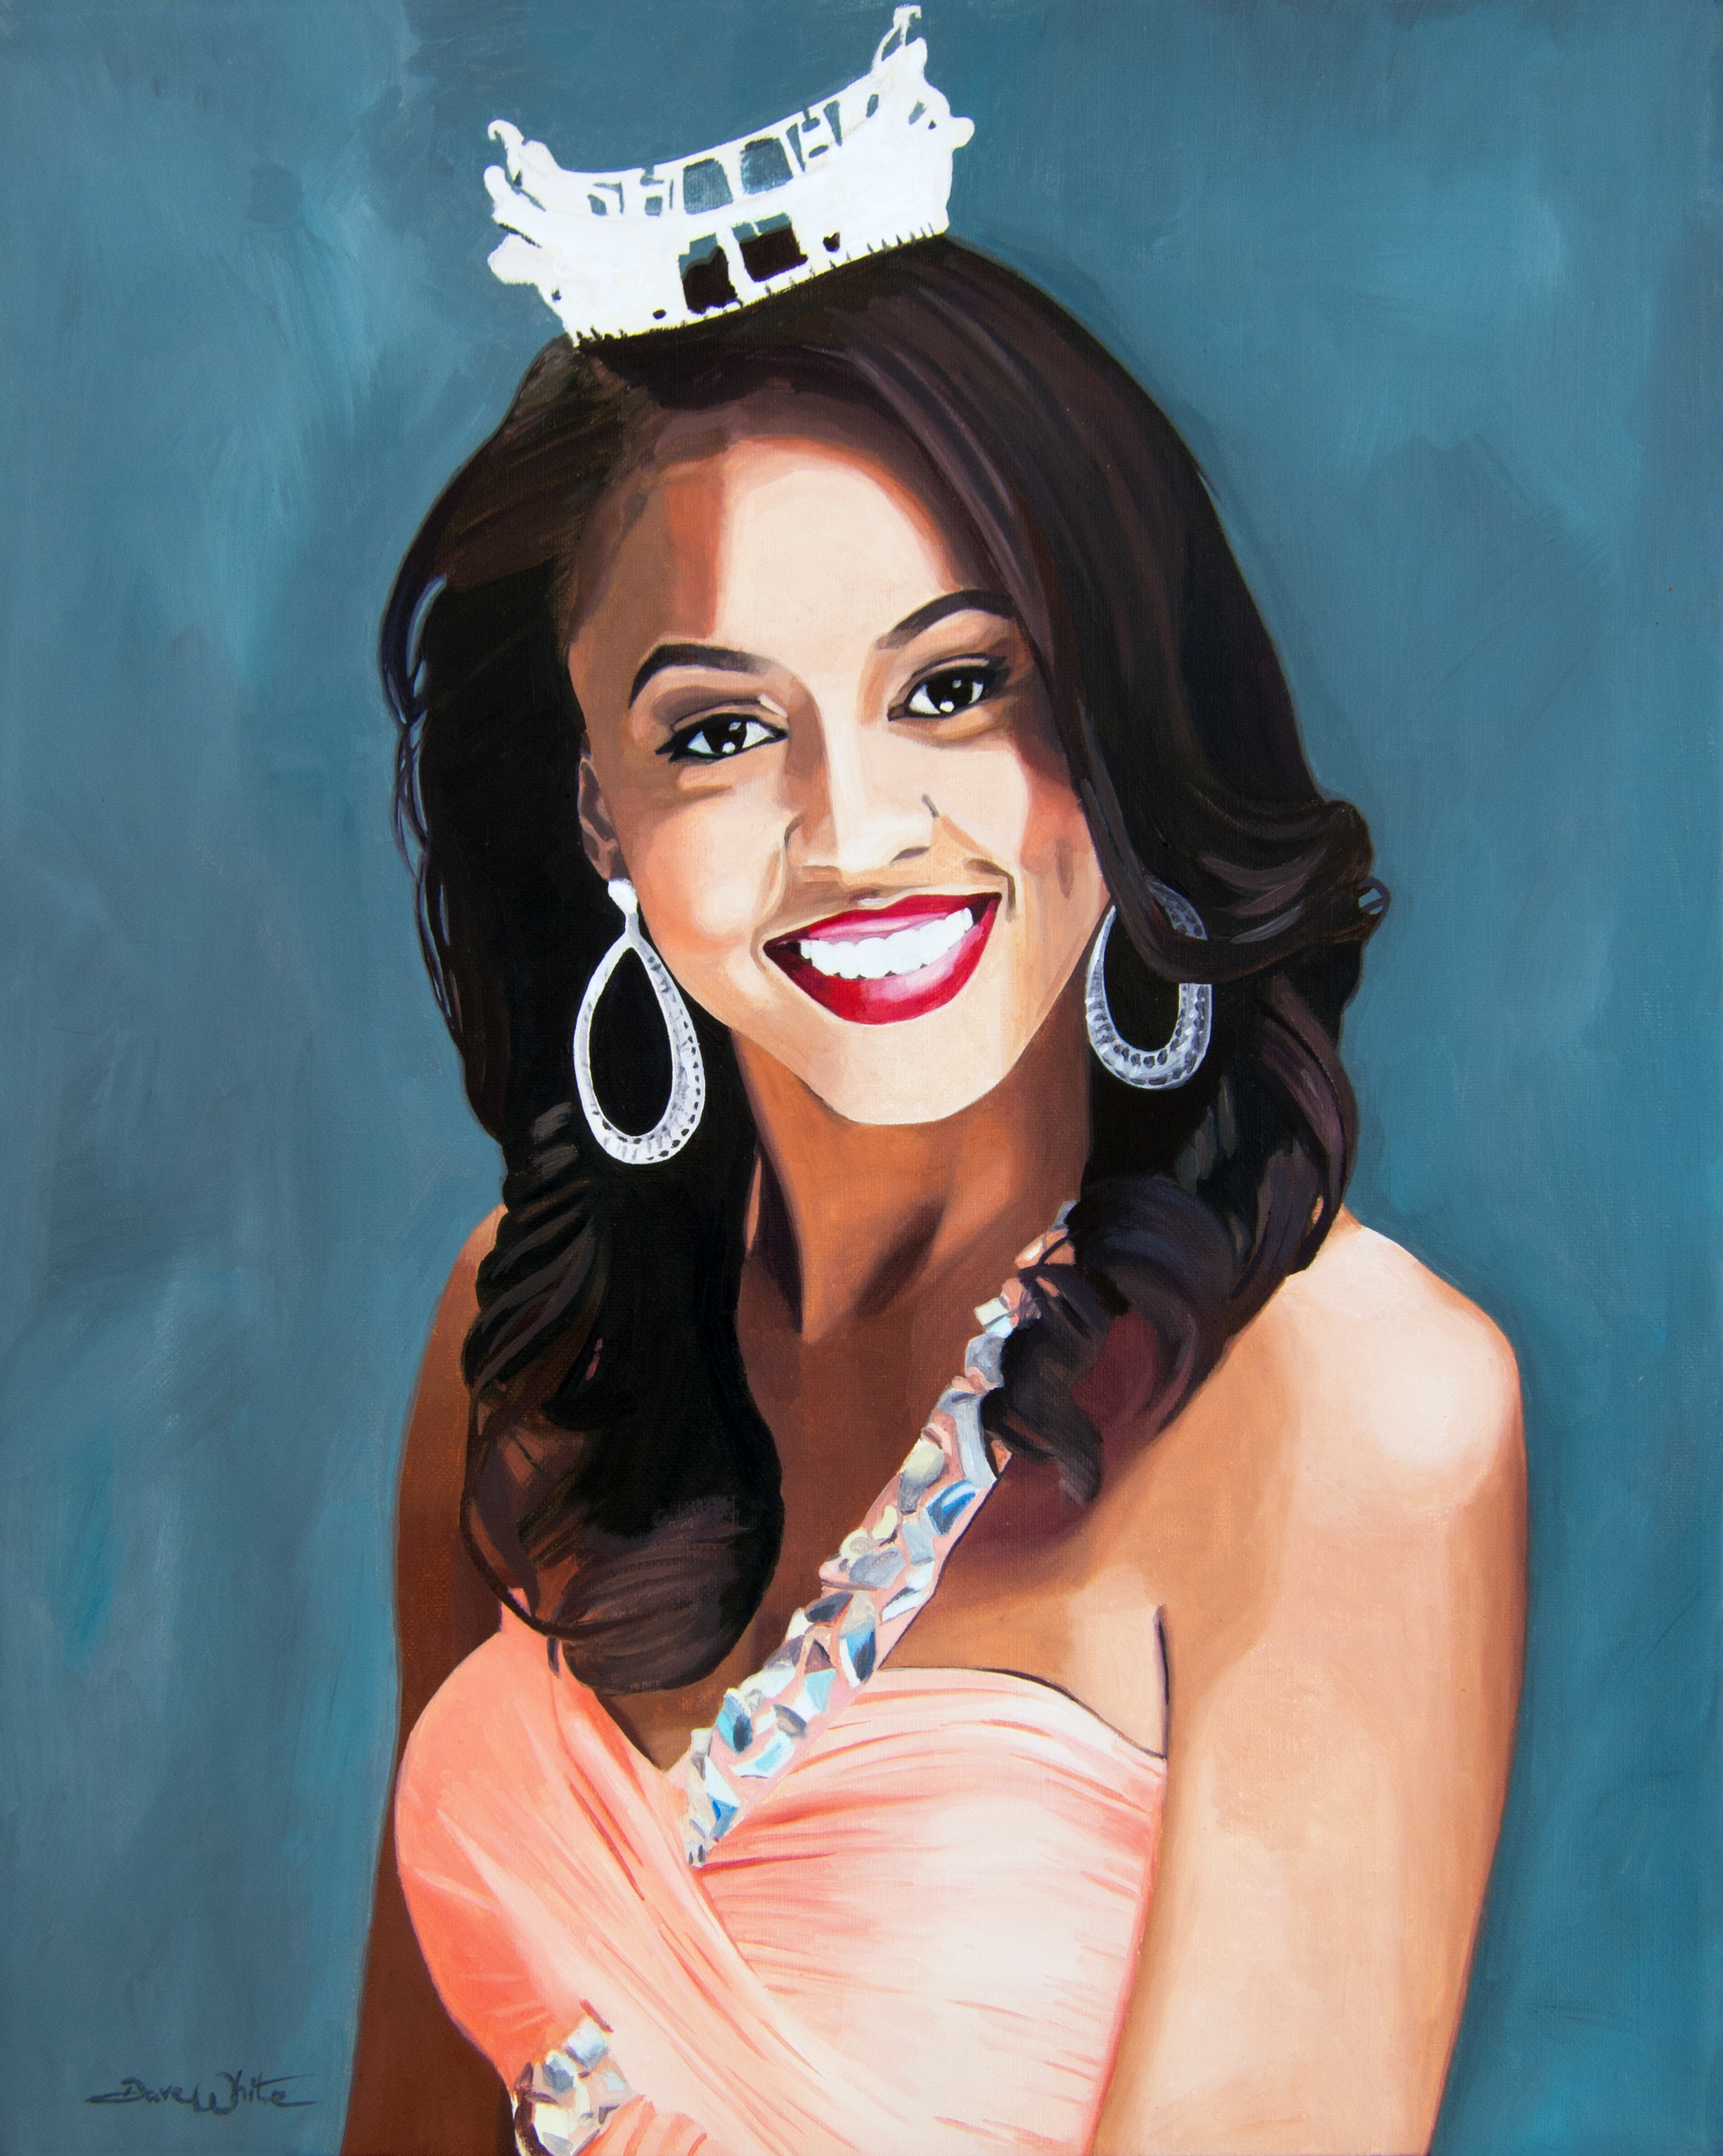 ashburn portrait artist, ashburn portrait painter, sterling portrait artist, sterling portrait painter, herndon portrait artist, herndon portrait painter, leesburg portrait artist, leesburg portrait painter, loudoun portrait artist, loudoun portrait painter